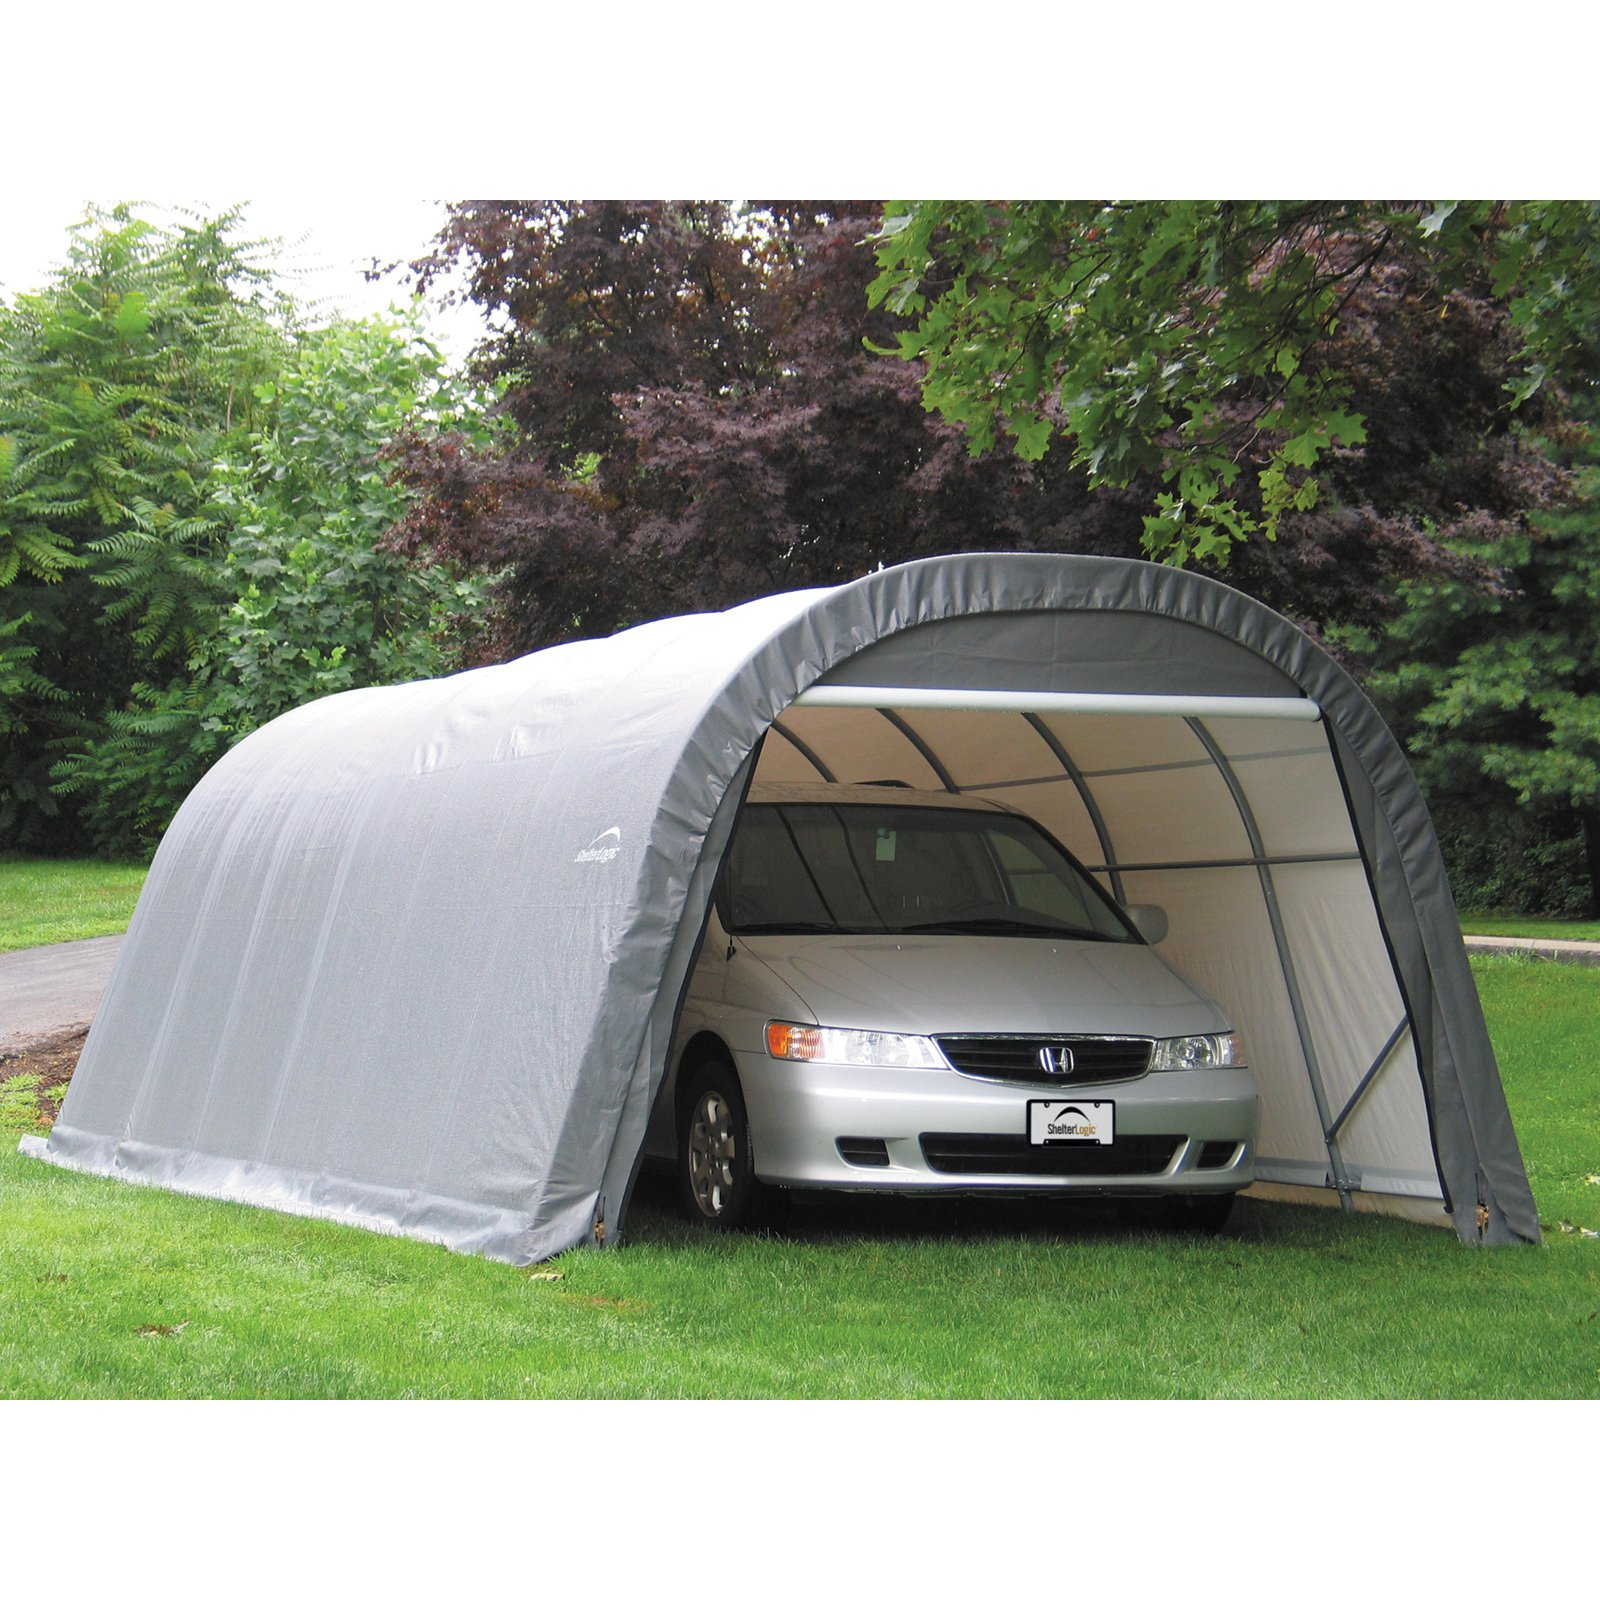 12x28x8 Round Style Shelter, Green Cover